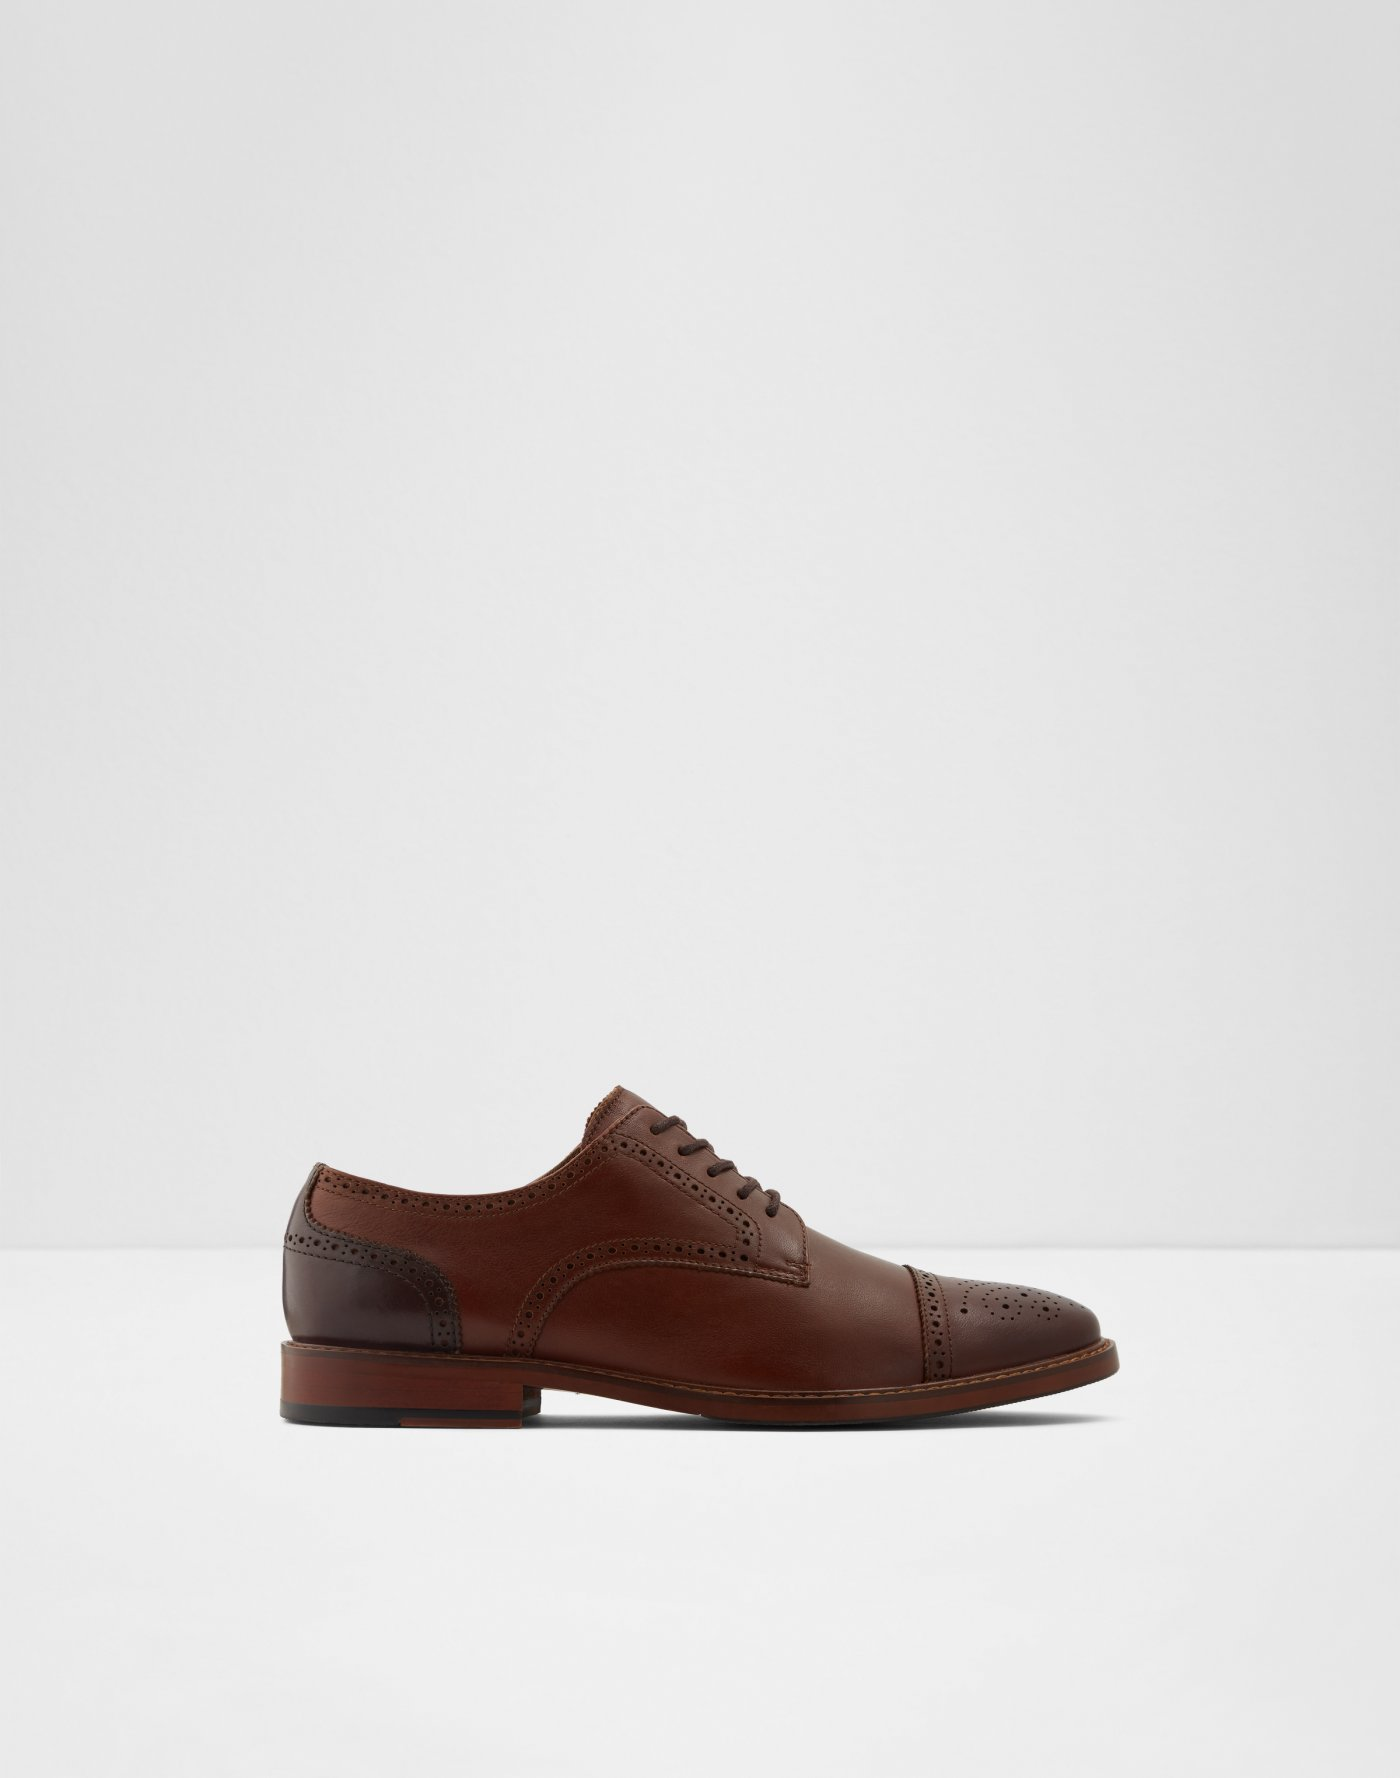 All Men's Sales | Shoes, Accessories And Wallets | ALDO US